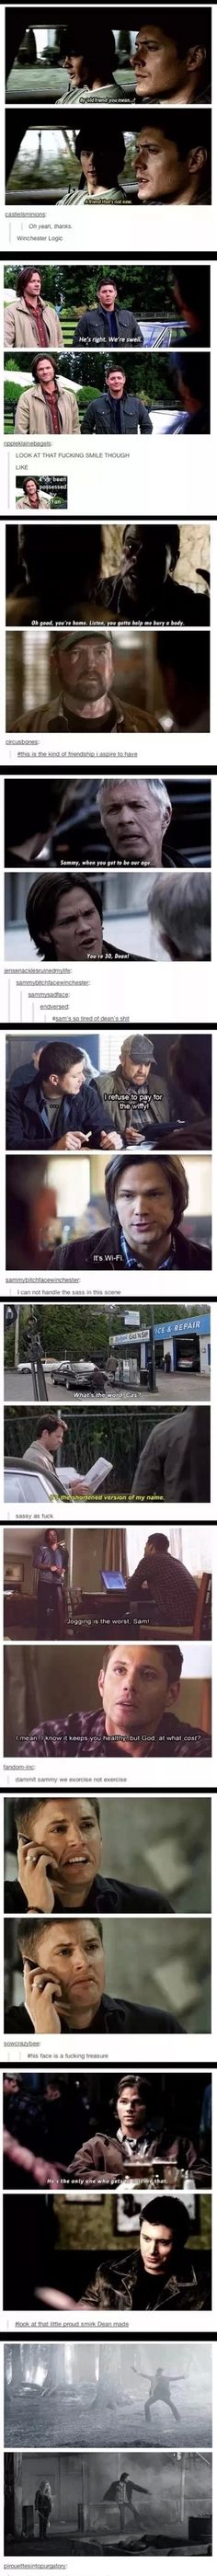 oh so supernatural.... pardon the language